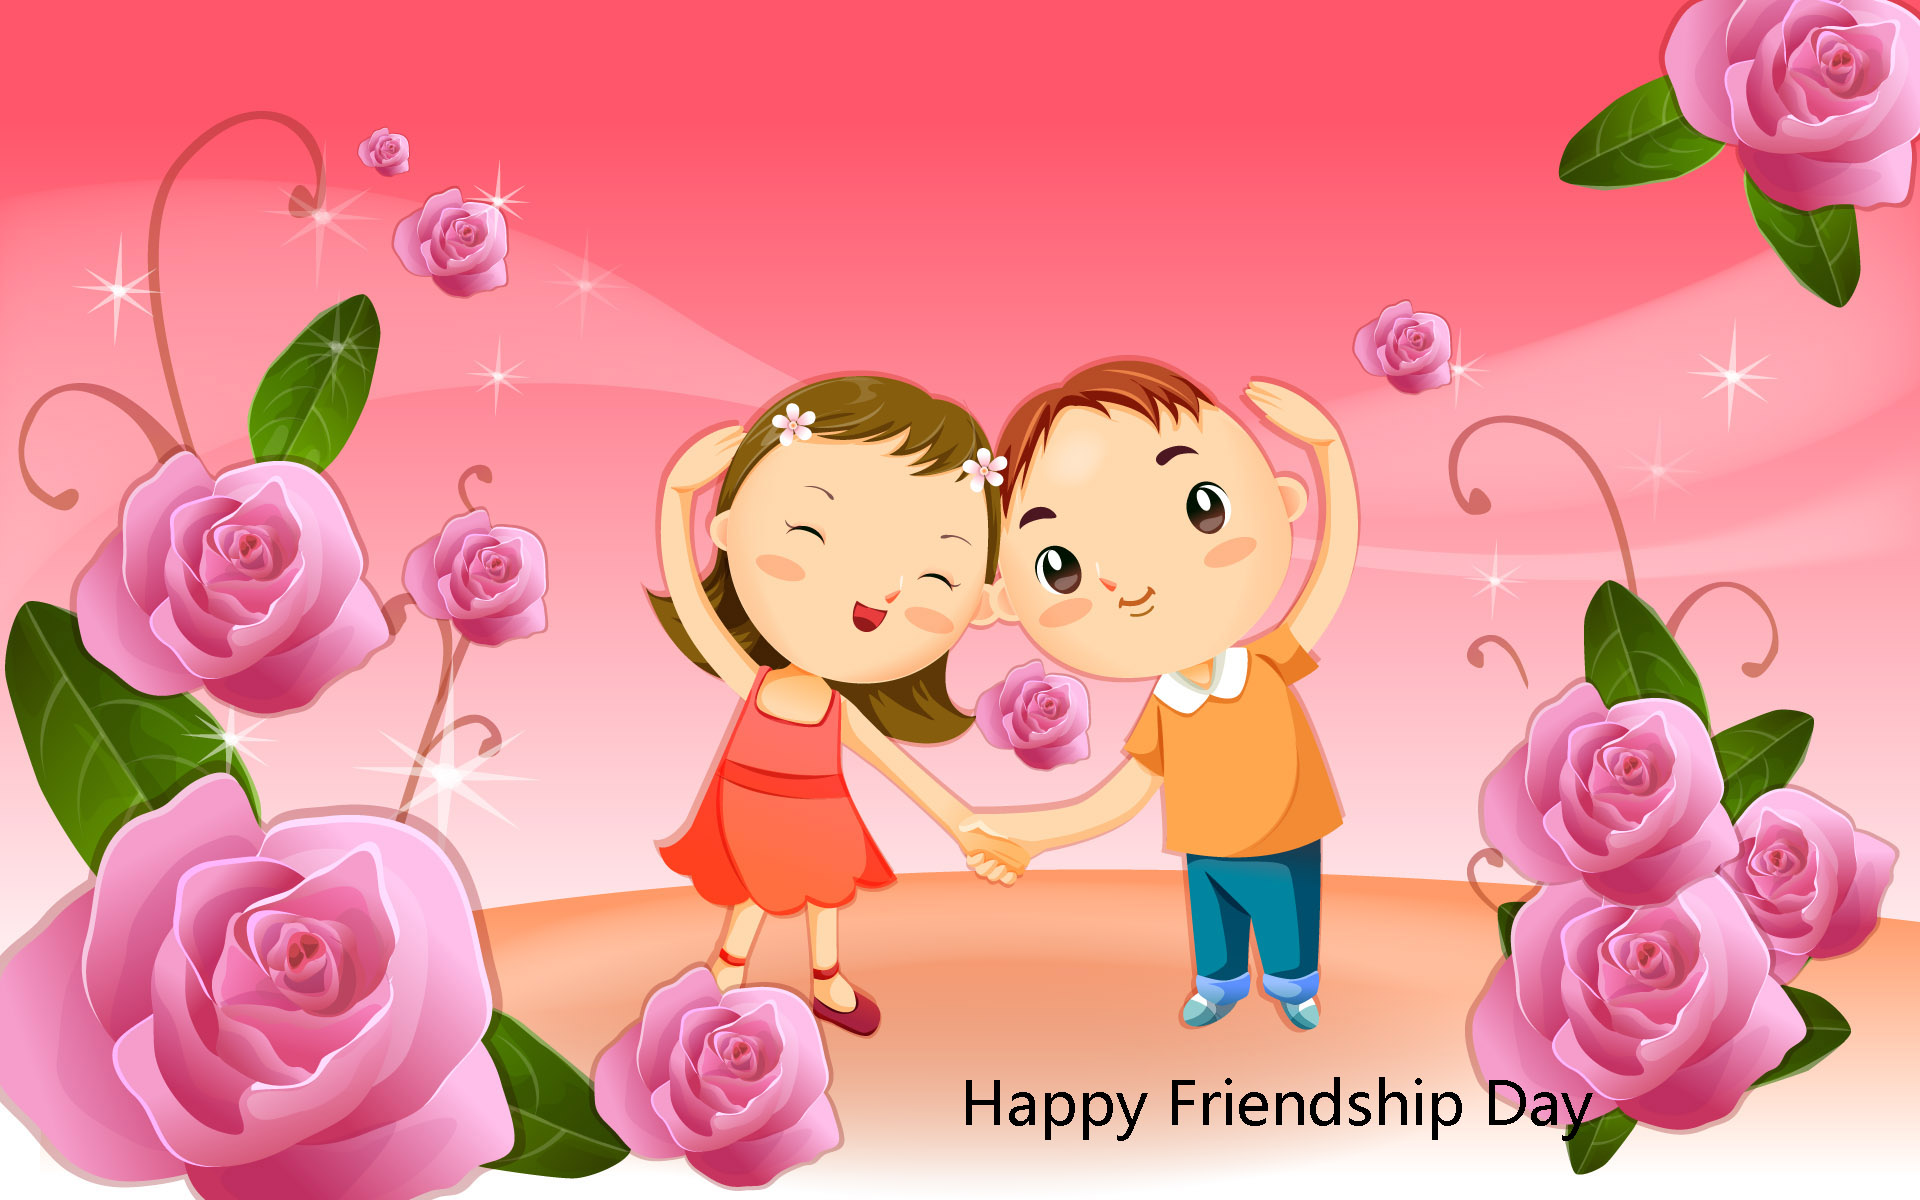 Happy Friendship Day Images Hd D Wallpapers Free Download 1920x1200